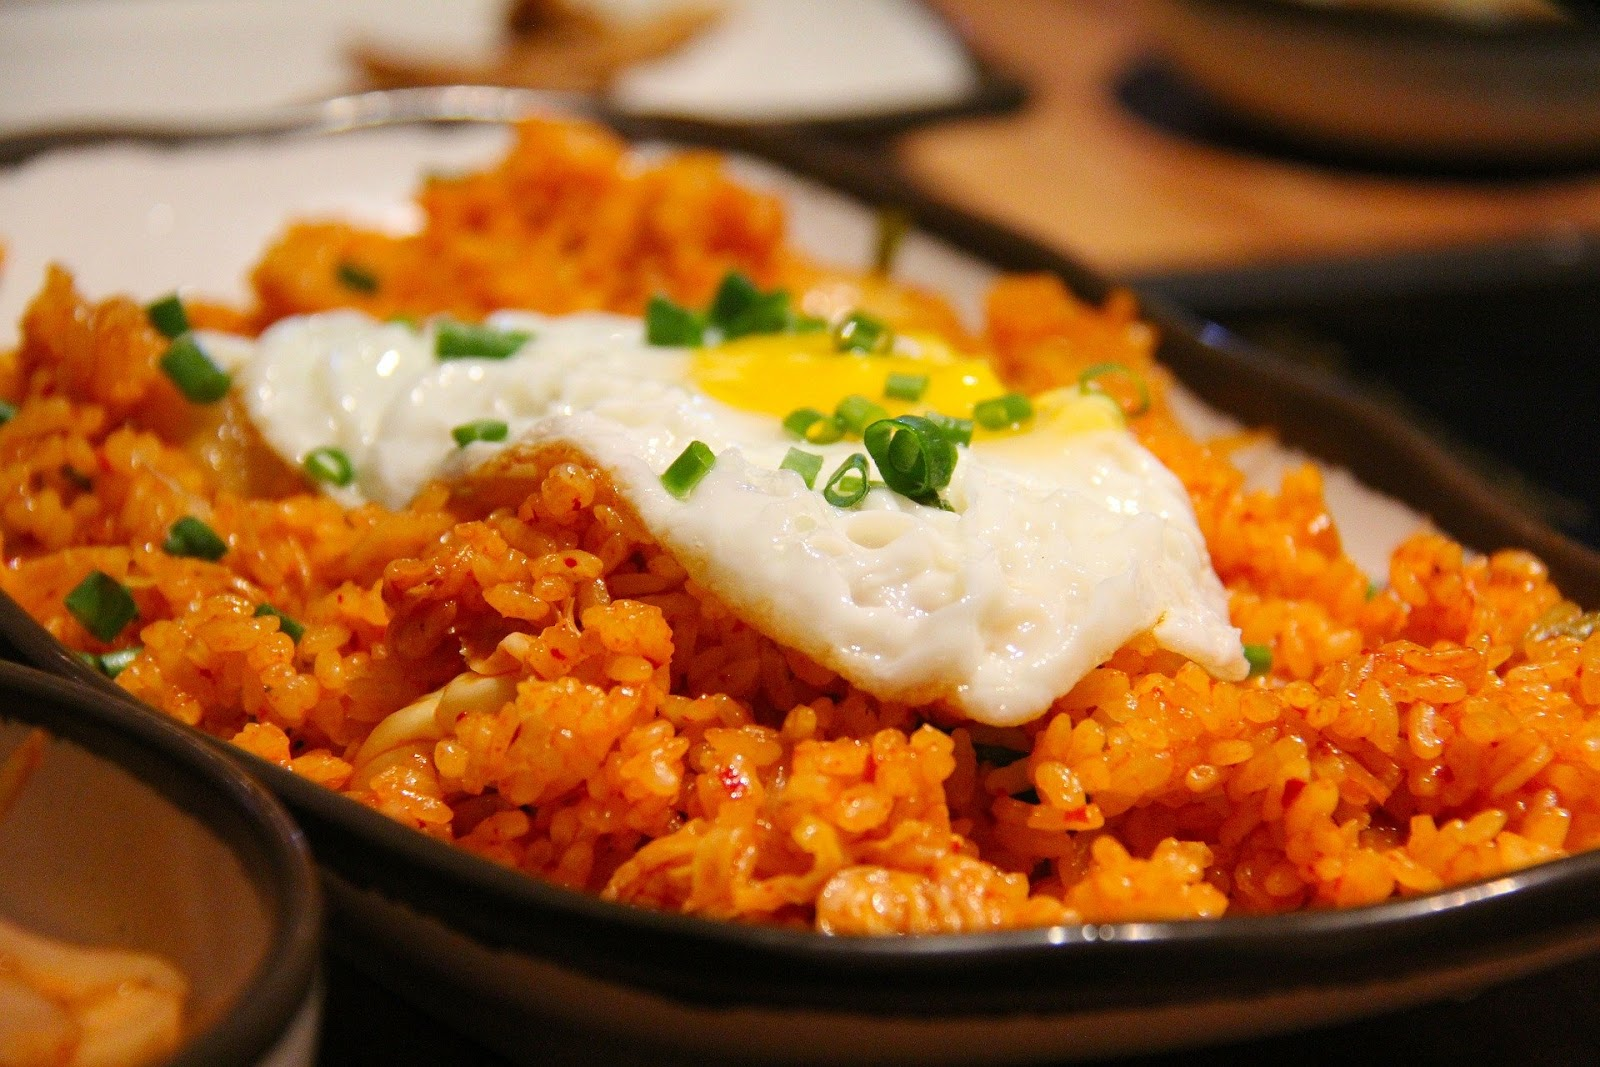 kimchi-fried-rice-fried-rice,food images